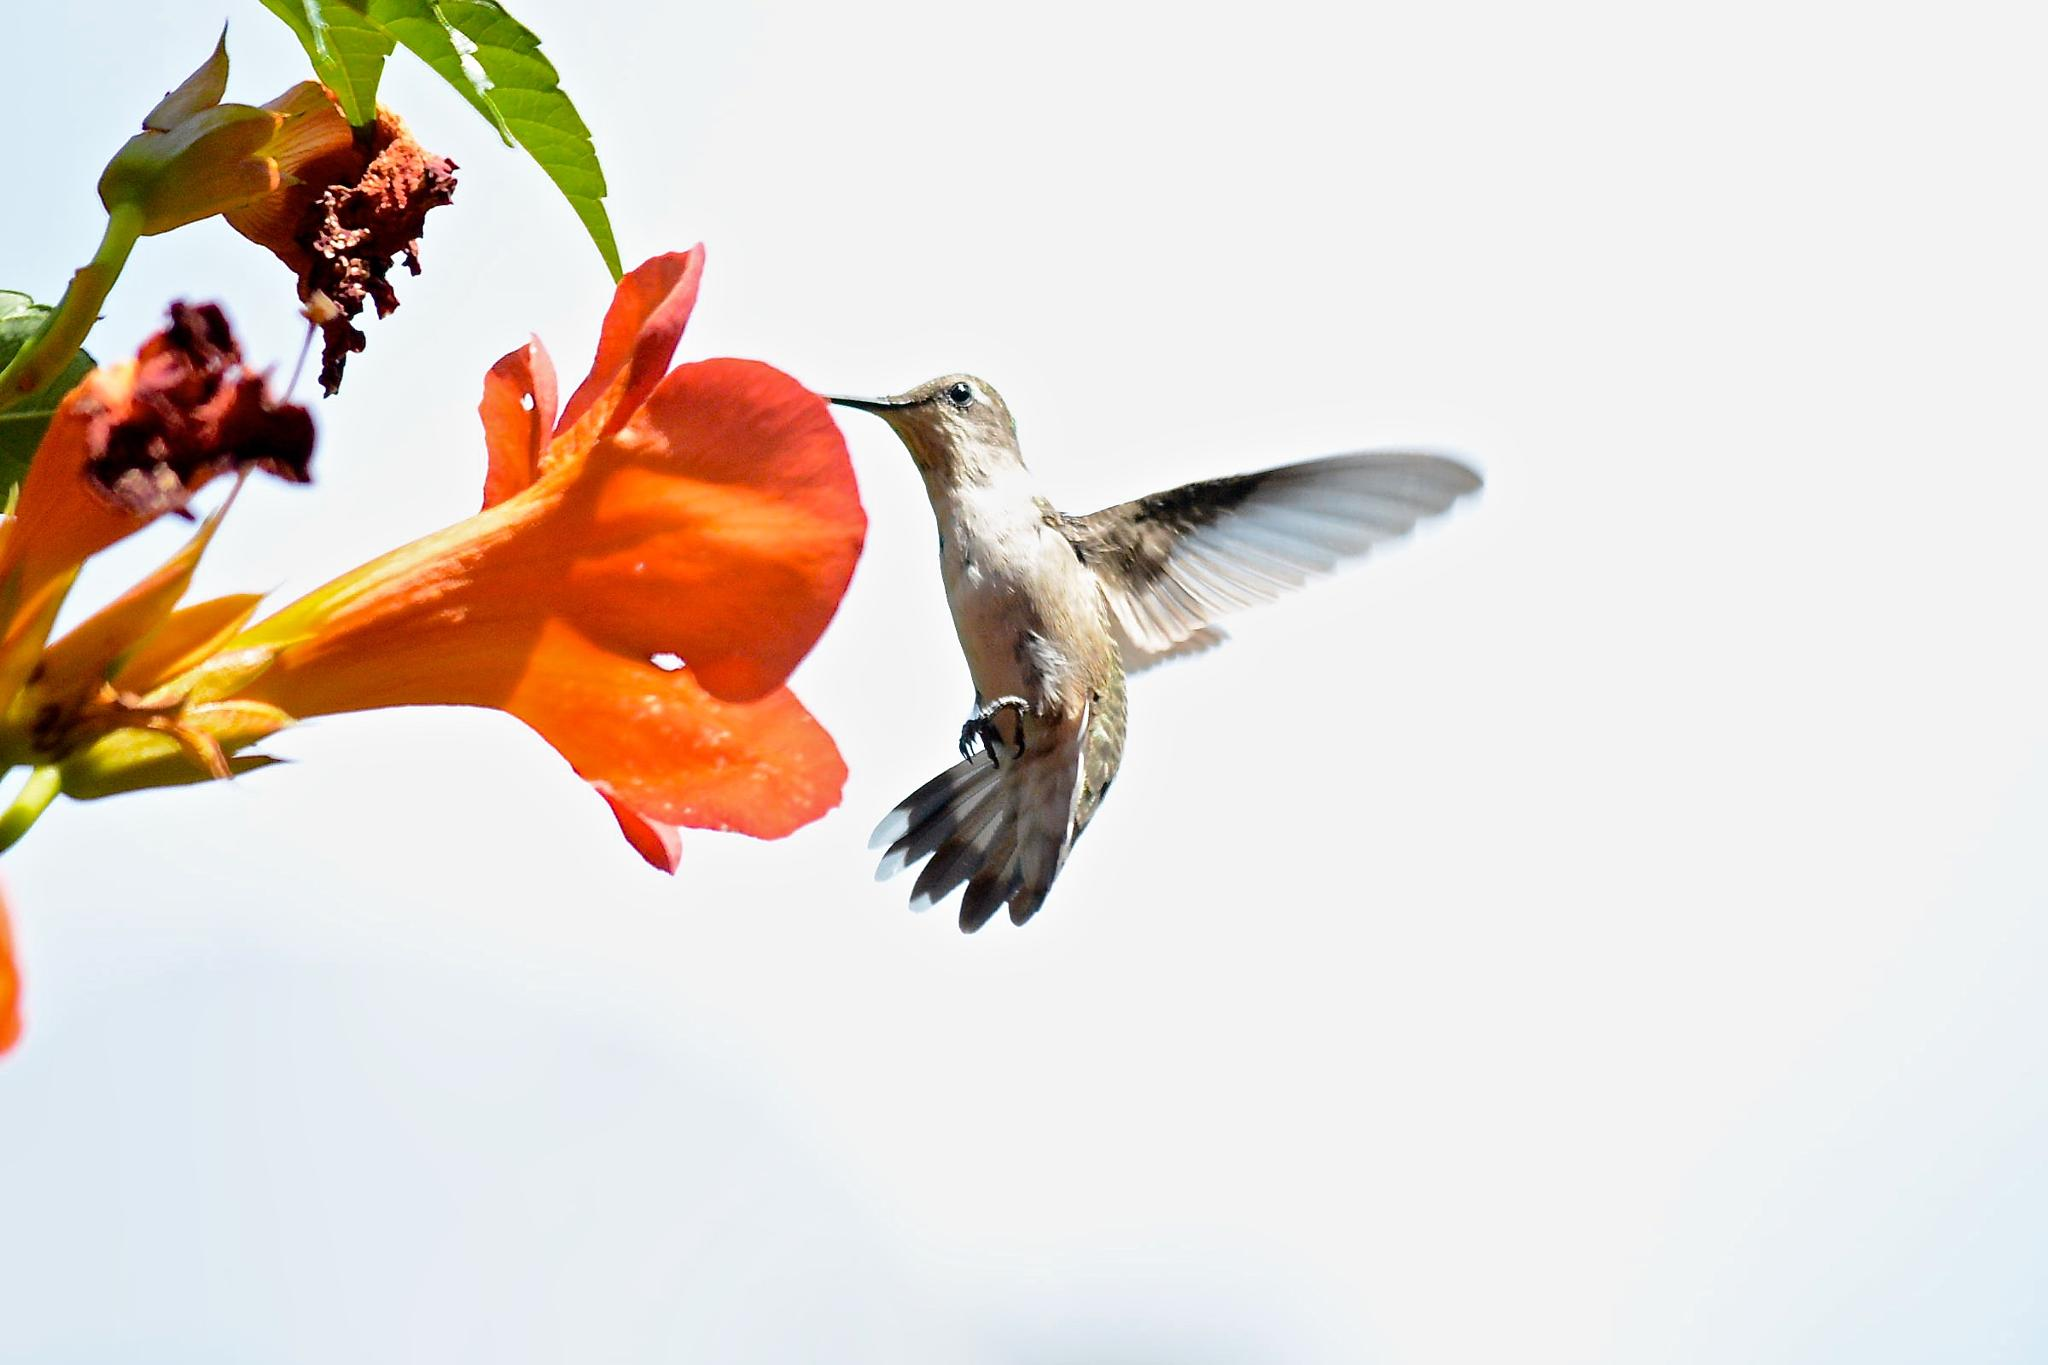 Female Ruby Throated Hummingbird at Trumpet Flower by Kathy Lebron Photography